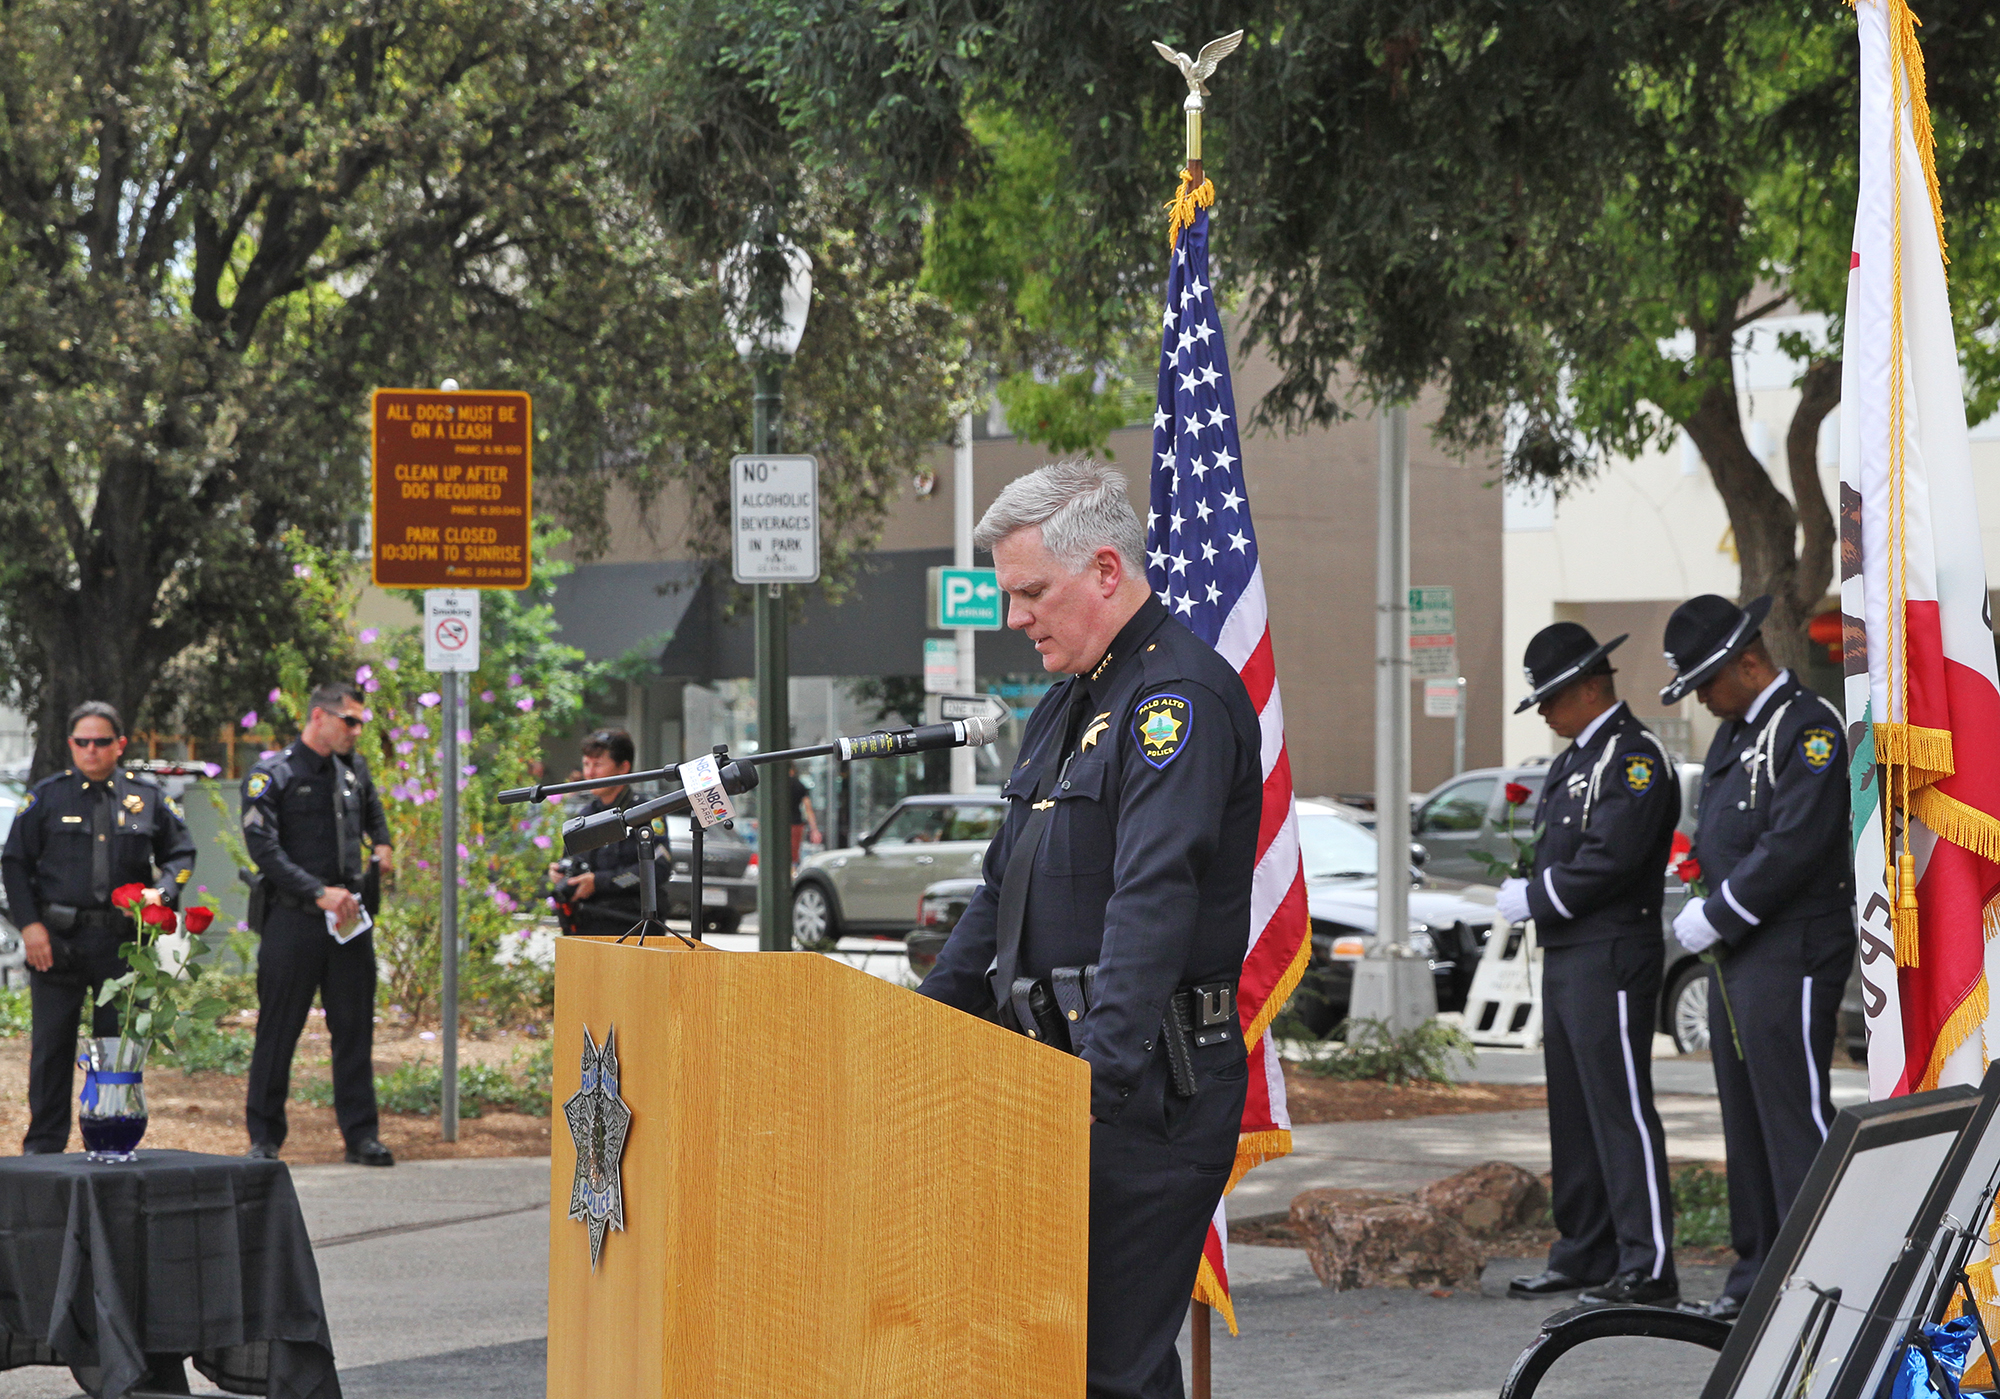 Among his duties as Palo Alto's top cop,Chief Dennis Burns addresses the crowd gathered for a memorial tribute for Palo Alto's three fallen officers and the installation of the Palo Alto Police Officers Memorial Grove on May 15, 2014, at Cogswell Plaza in downtown.  Photo by Veronica Weber/Palo Alto Weekly.